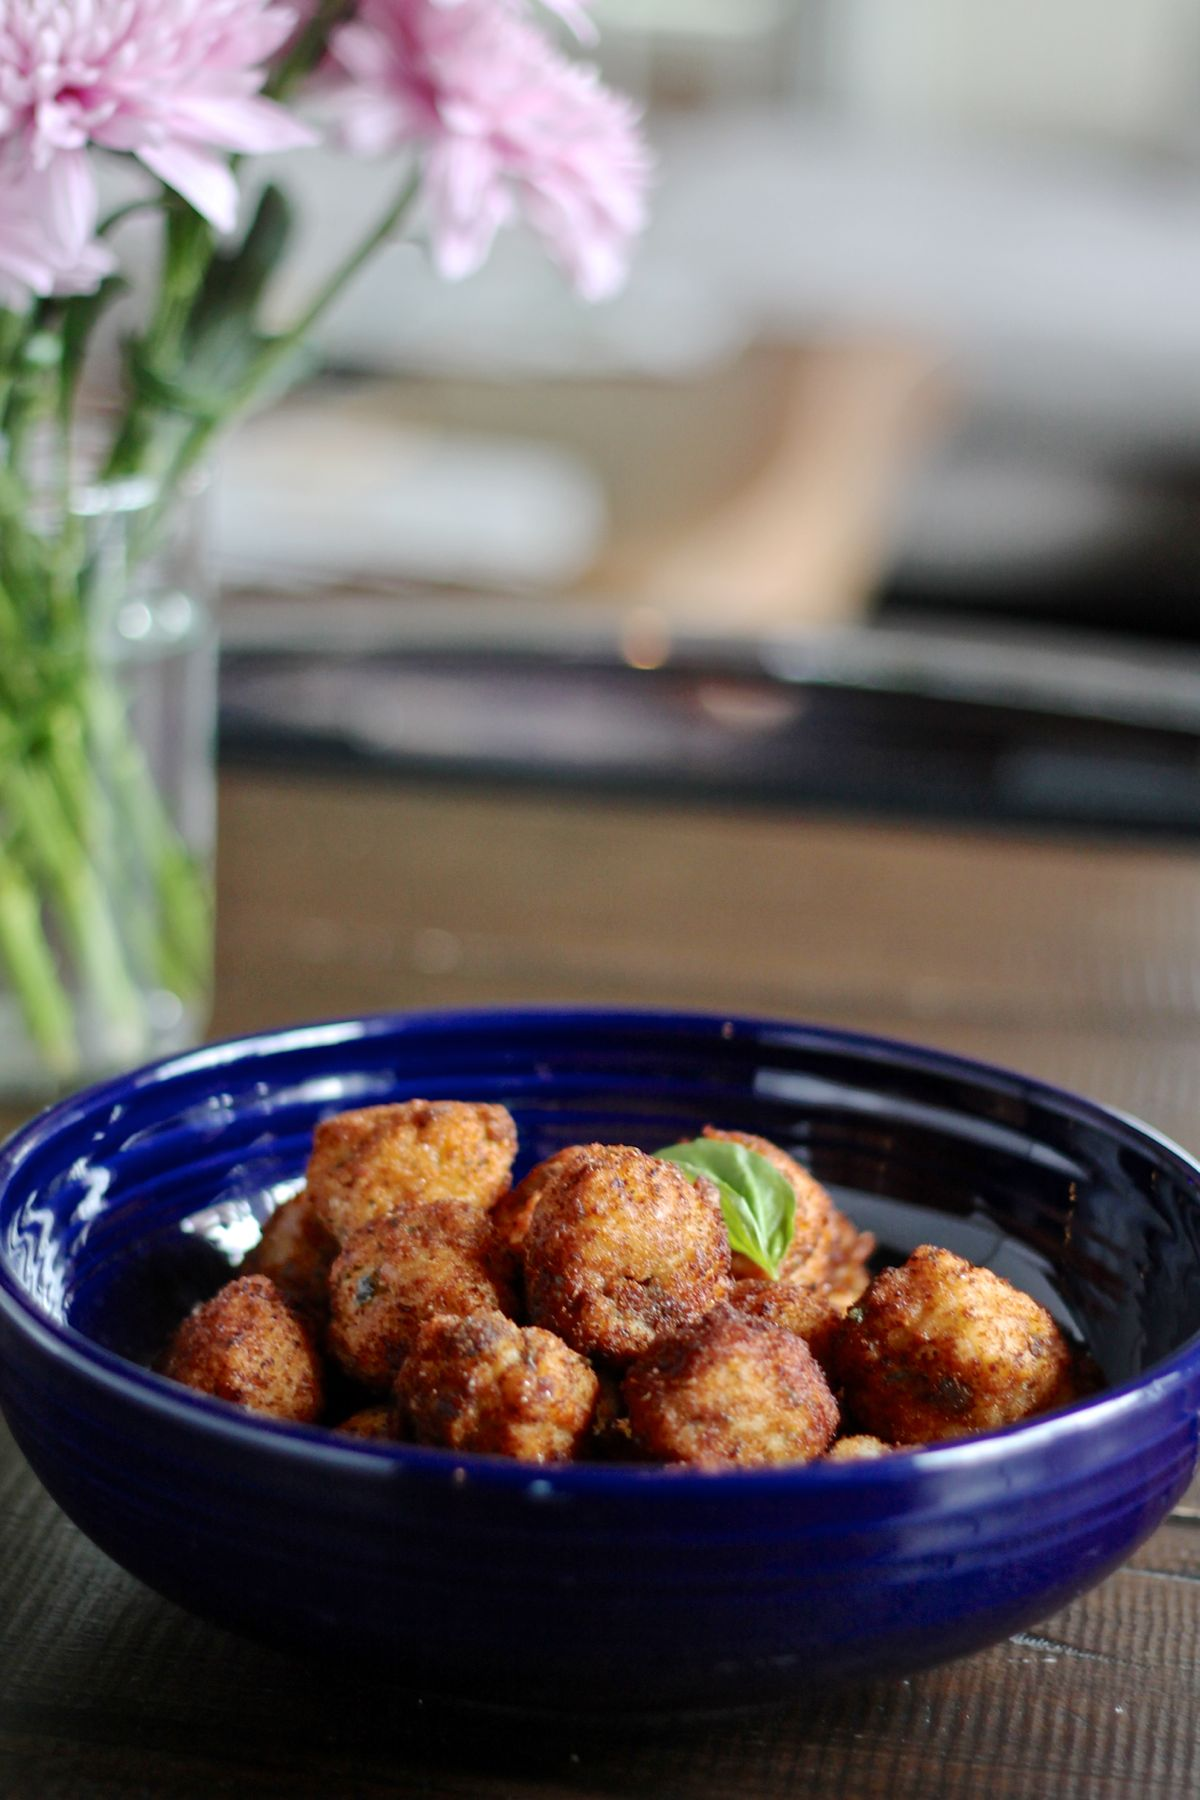 Wondering how to turn leftover risotto into arancini? This easy recipe is the best way to serve leftover risotto!